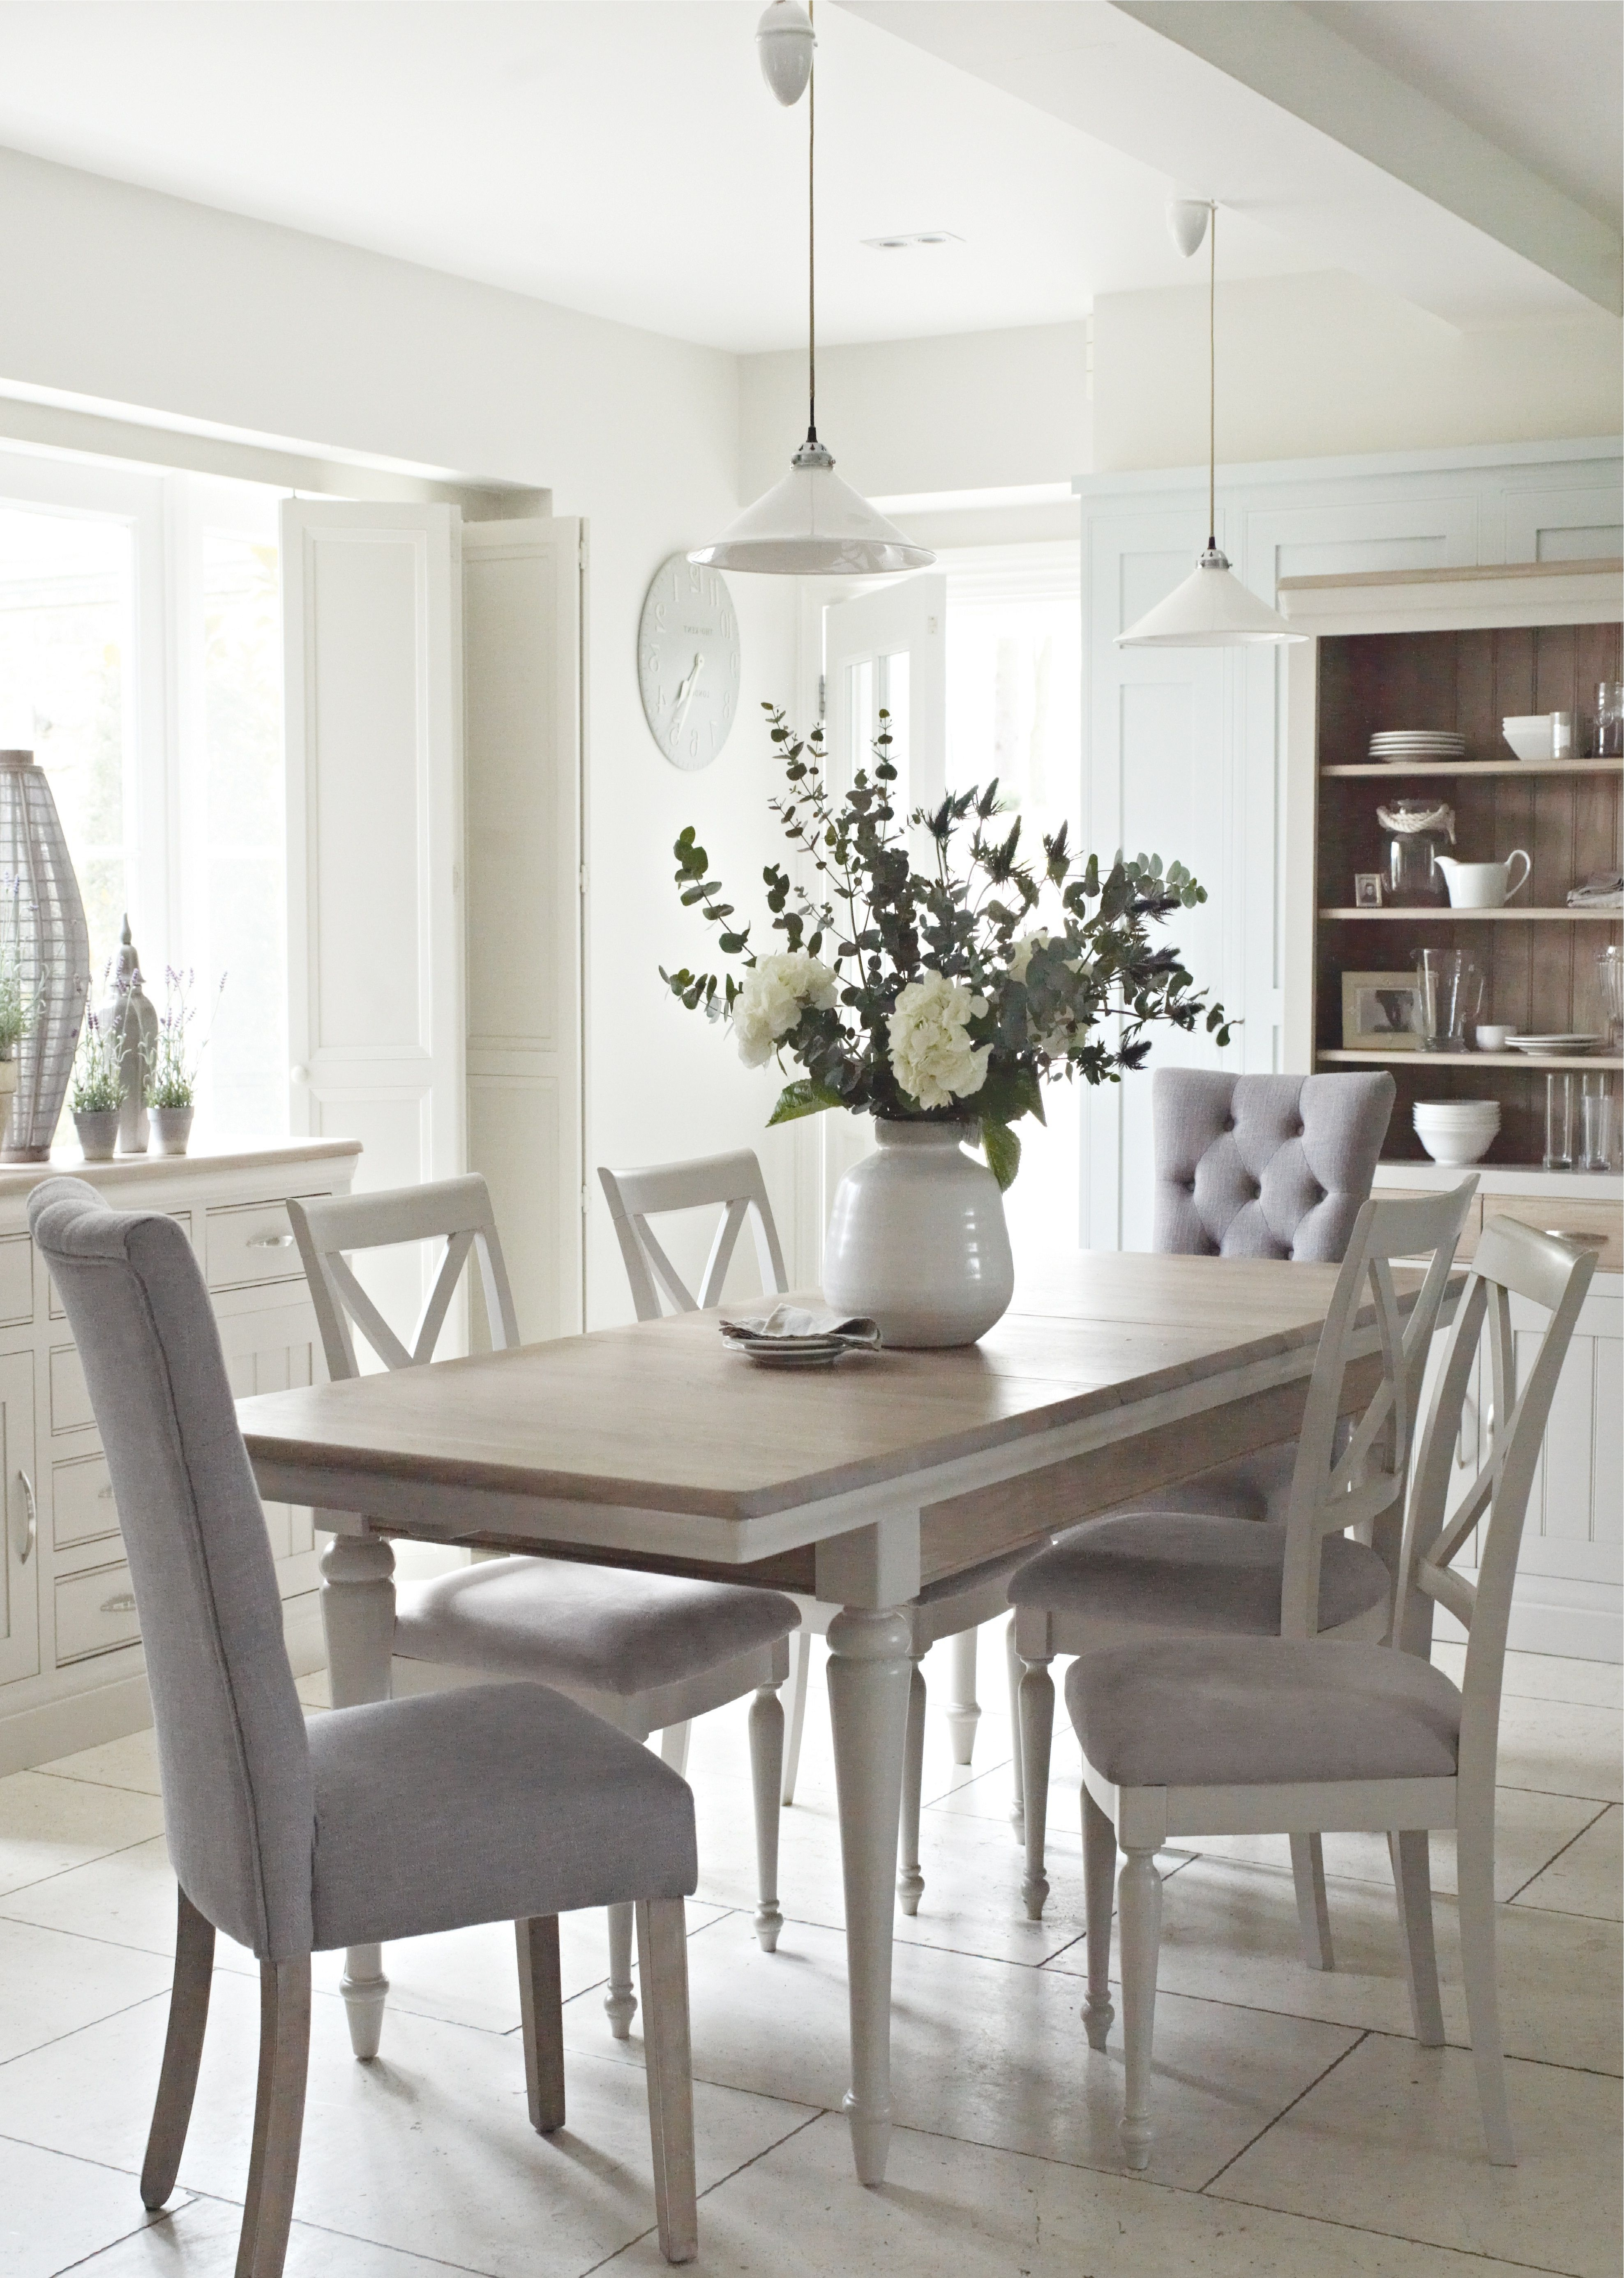 2017 The Classic Bambury Dining Range Just Oozes Country Chic. With A inside Caira 7 Piece Rectangular Dining Sets With Upholstered Side Chairs